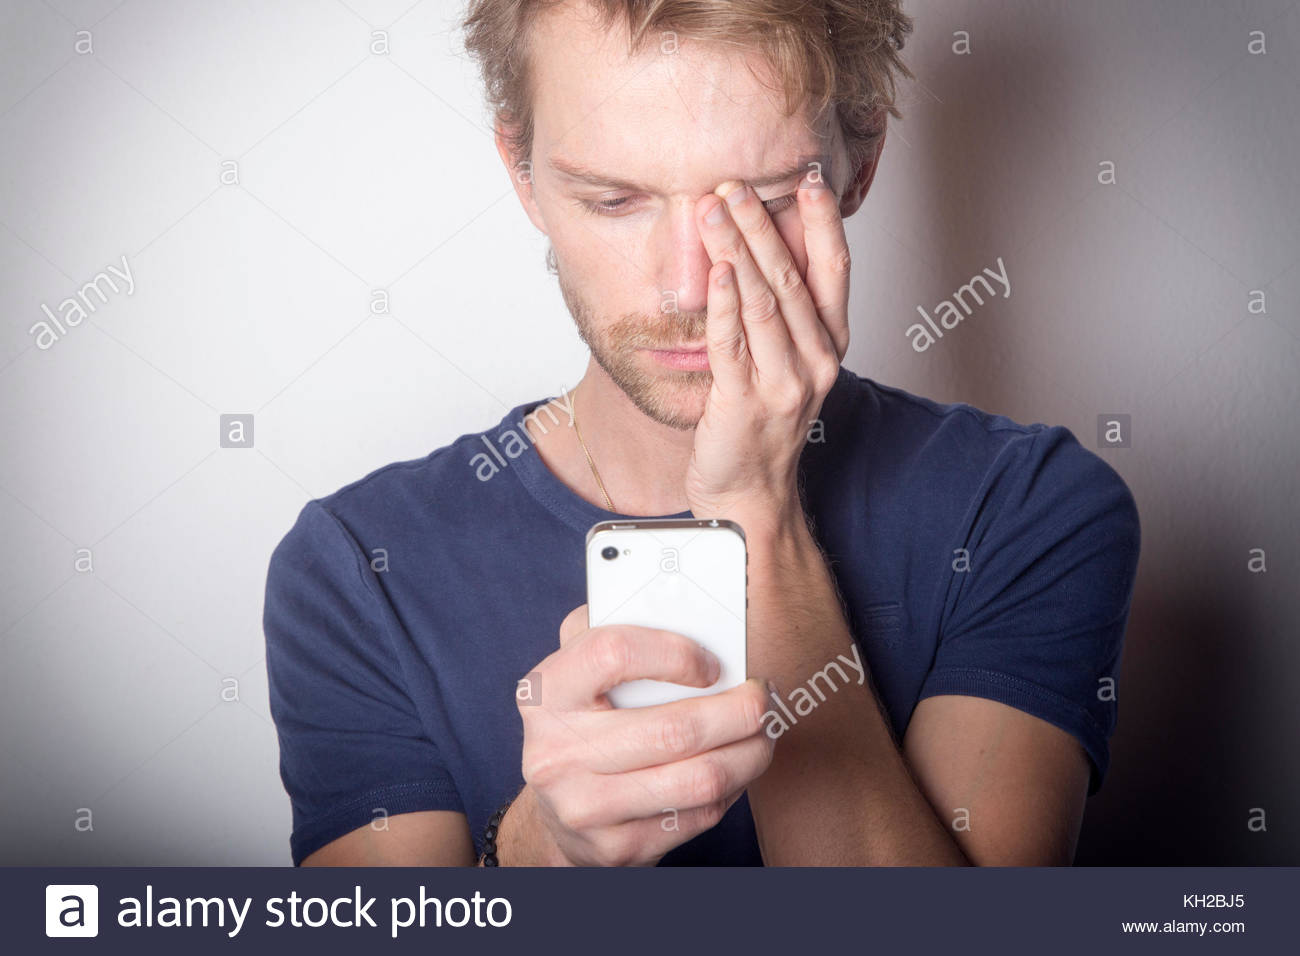 Young man using smartphone looking depressed - Stock Image